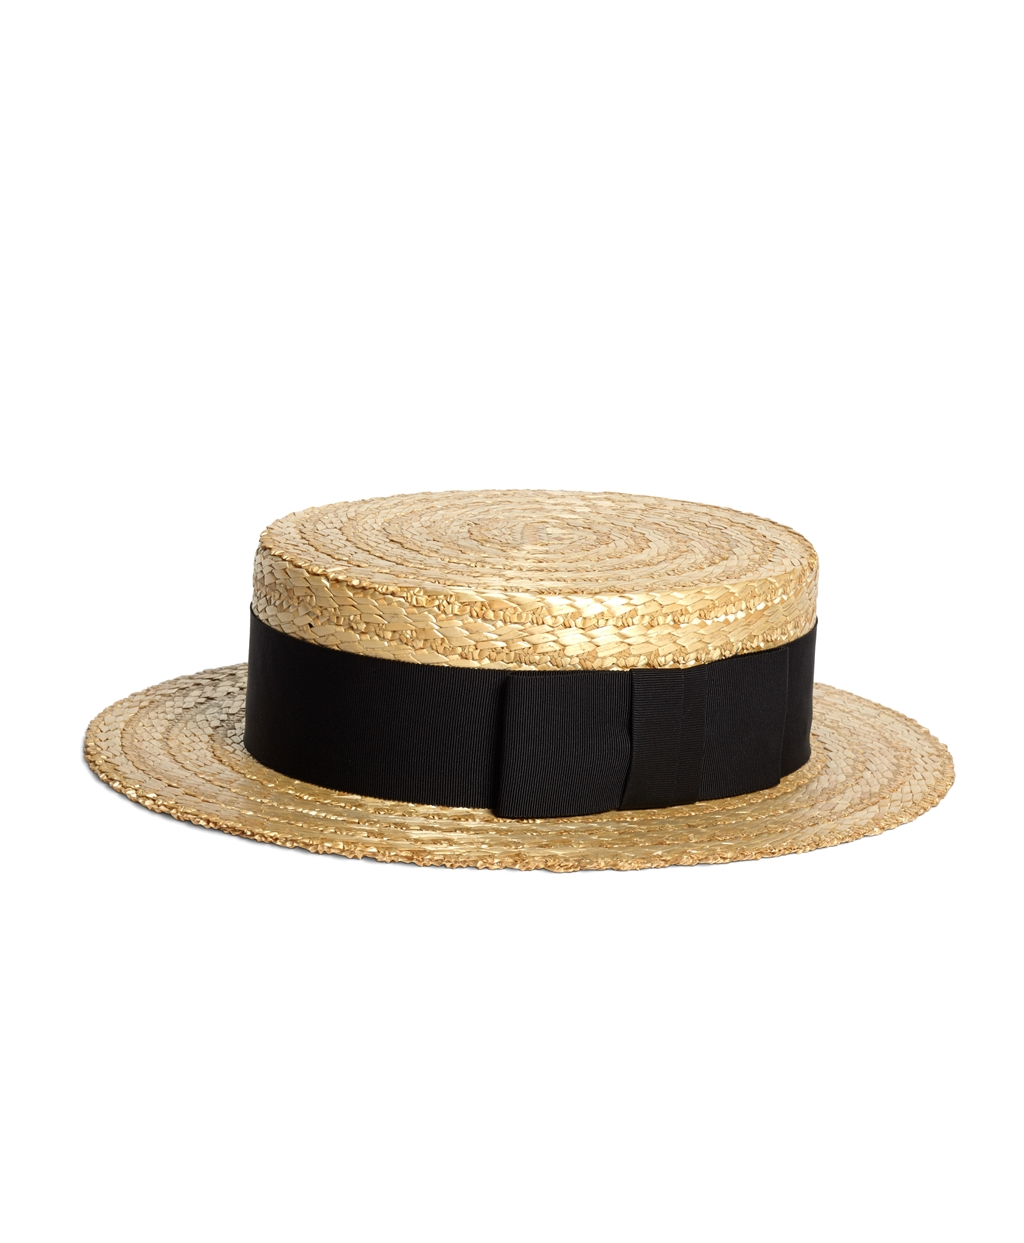 cd6c2fb106d Men s Lock and Co. Straw Boater Hat with Black Ribbon